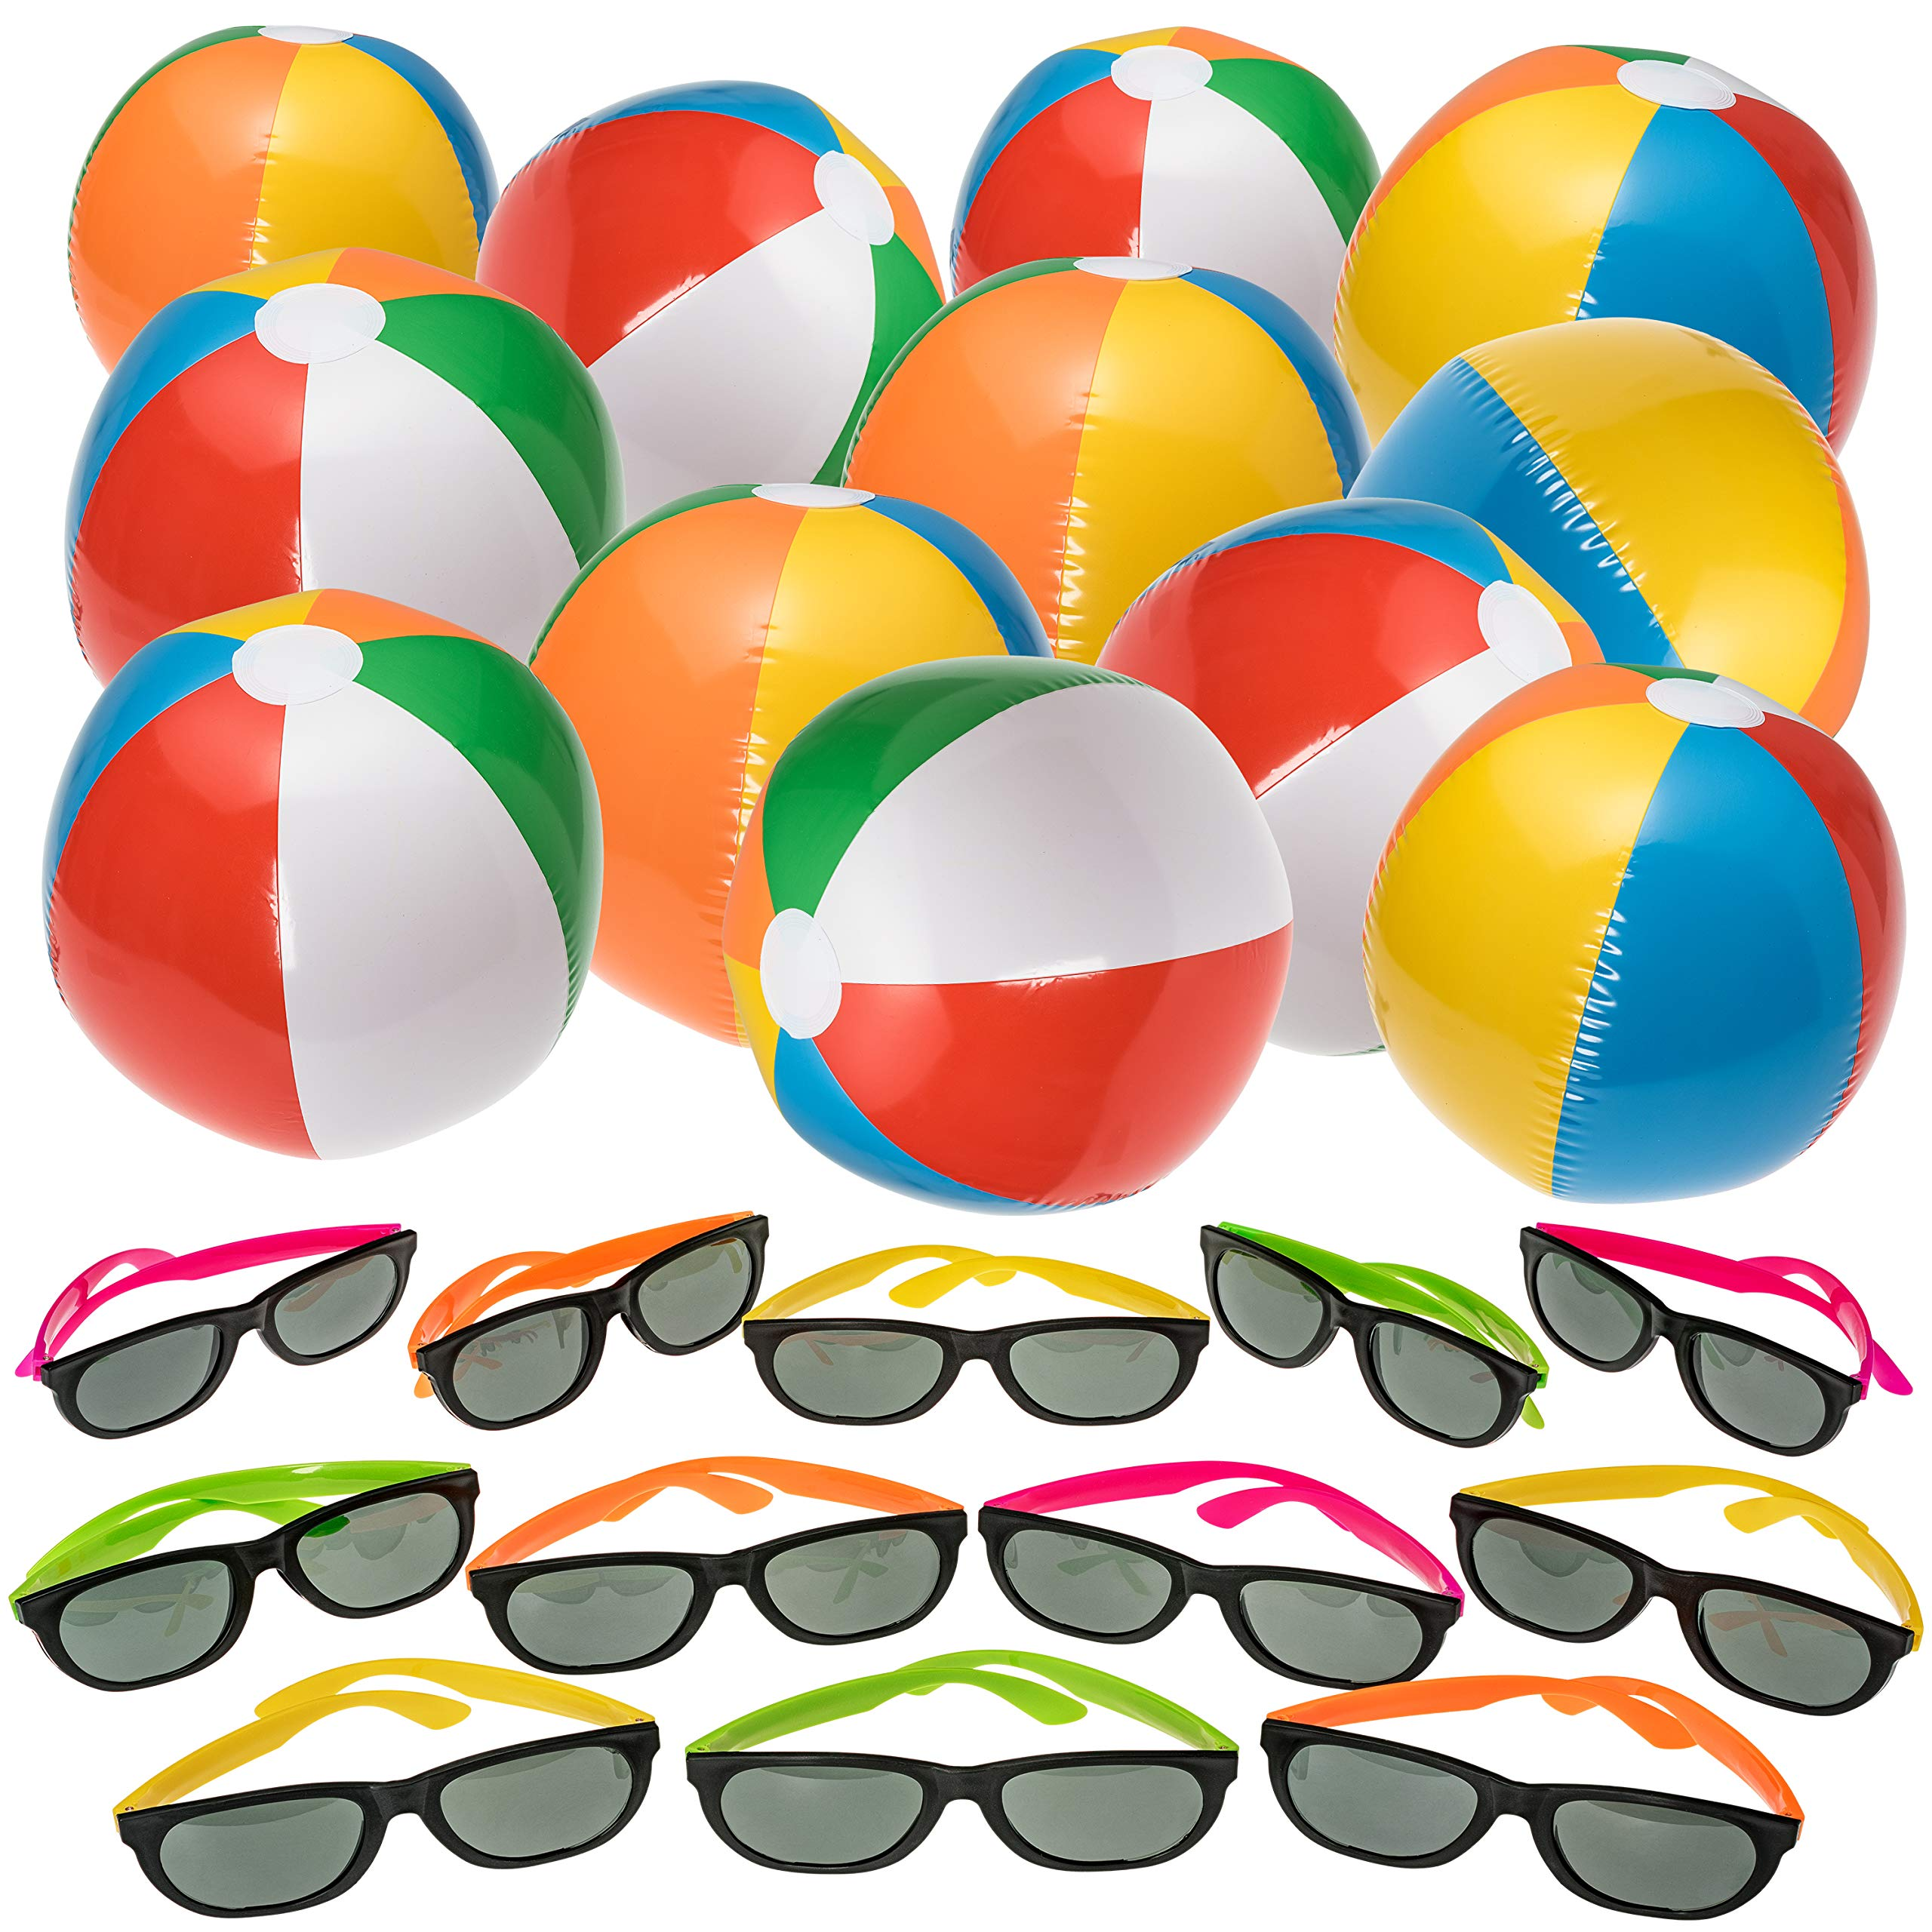 NJ Novelty Beach and Pool Party Favors - Inflatable Beach Balls and Neon Sunglasses Summer Party Set 24 Pieces Total, Rainbow Color by NJ Novelty